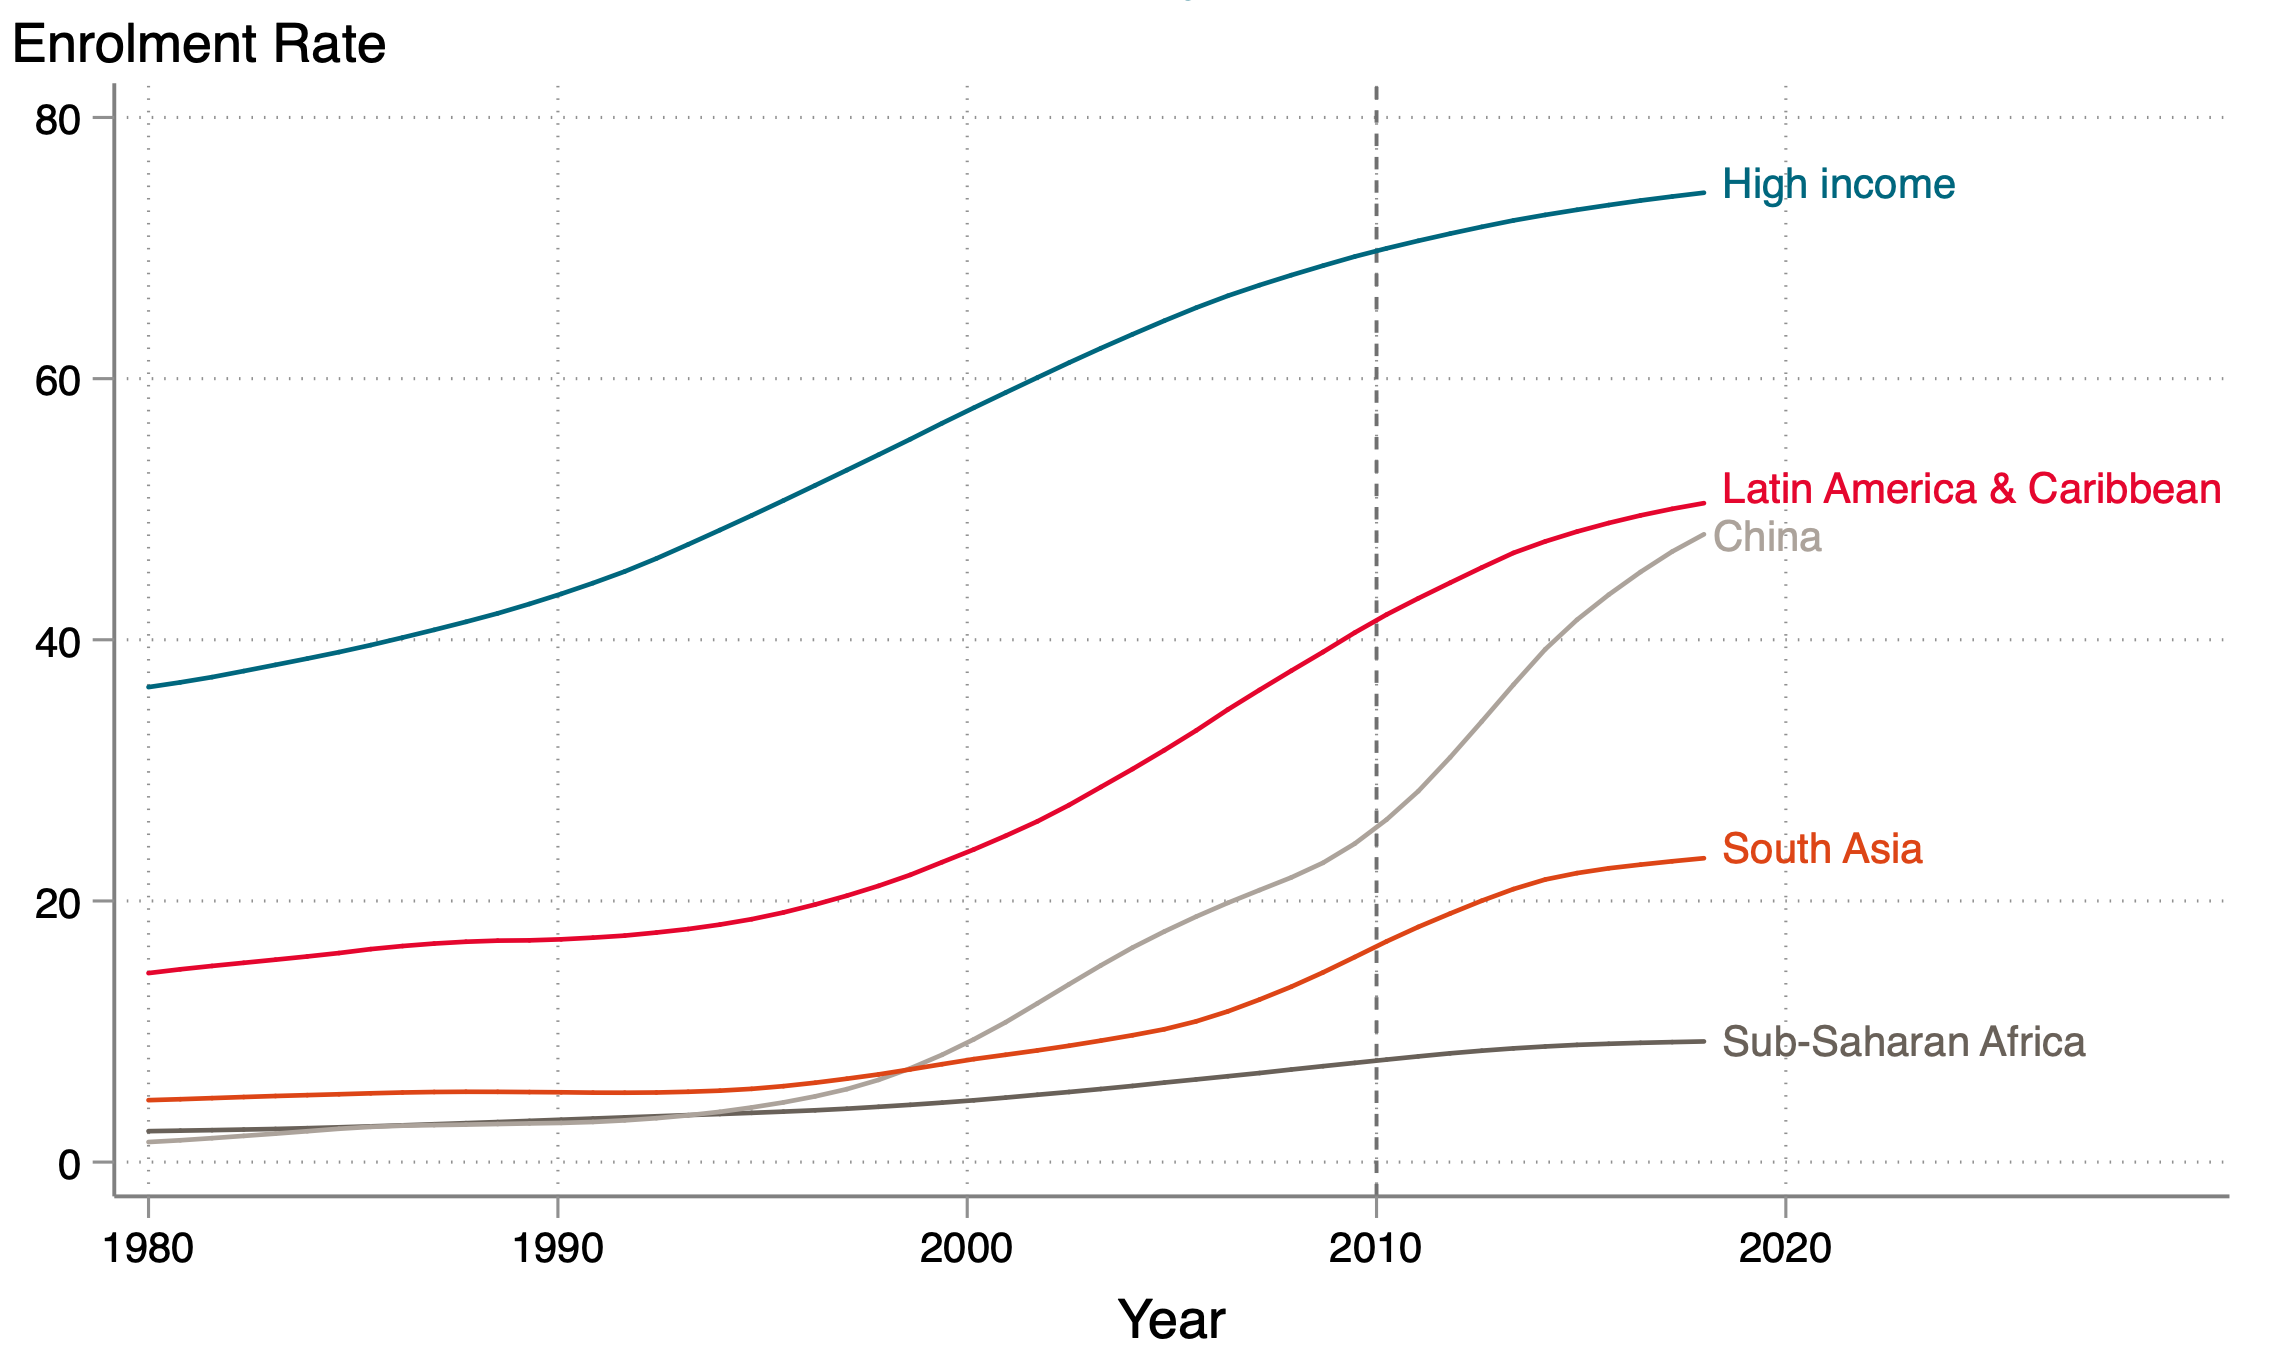 Chart showing sharp rise in Chinese tertiary enrolment rate, compared to slower upward growth for other regions of the world.